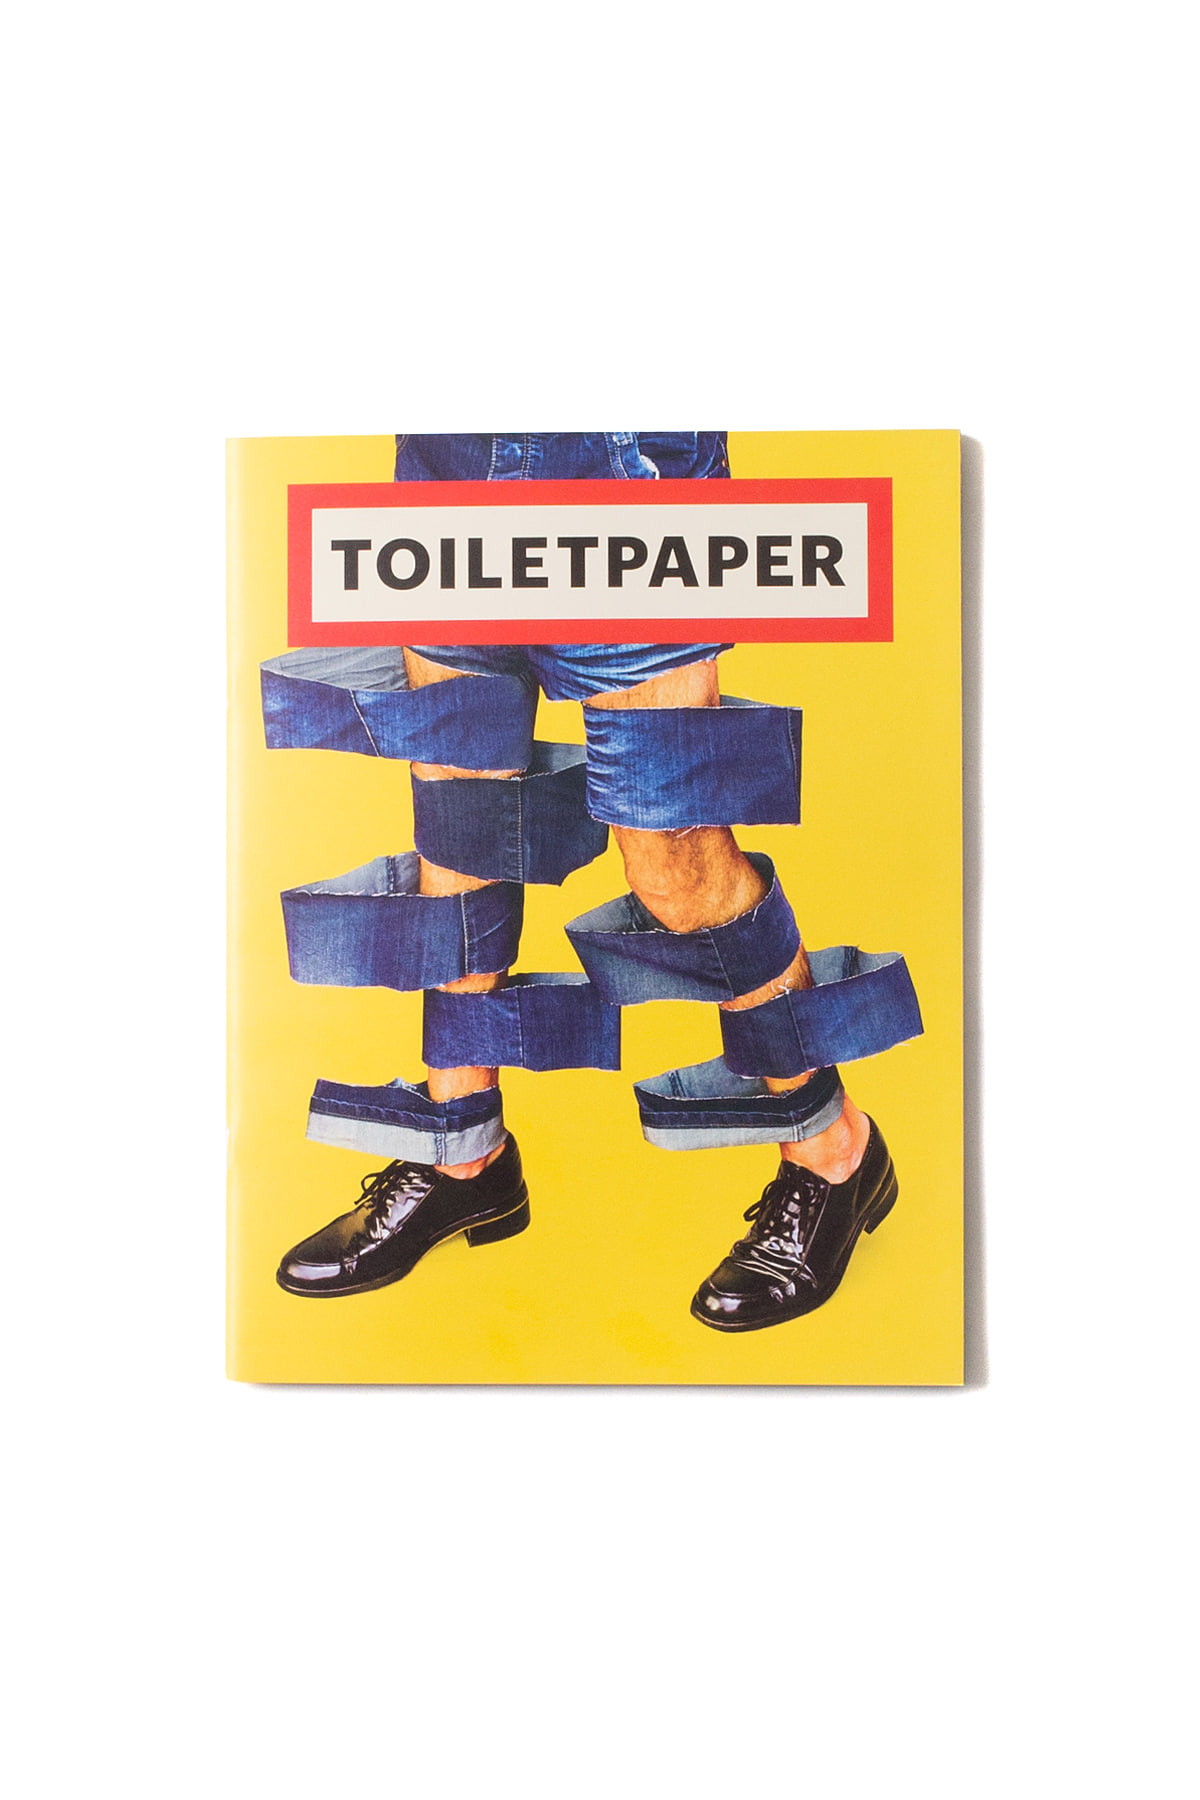 TOILET PAPER : ISSUE. 14